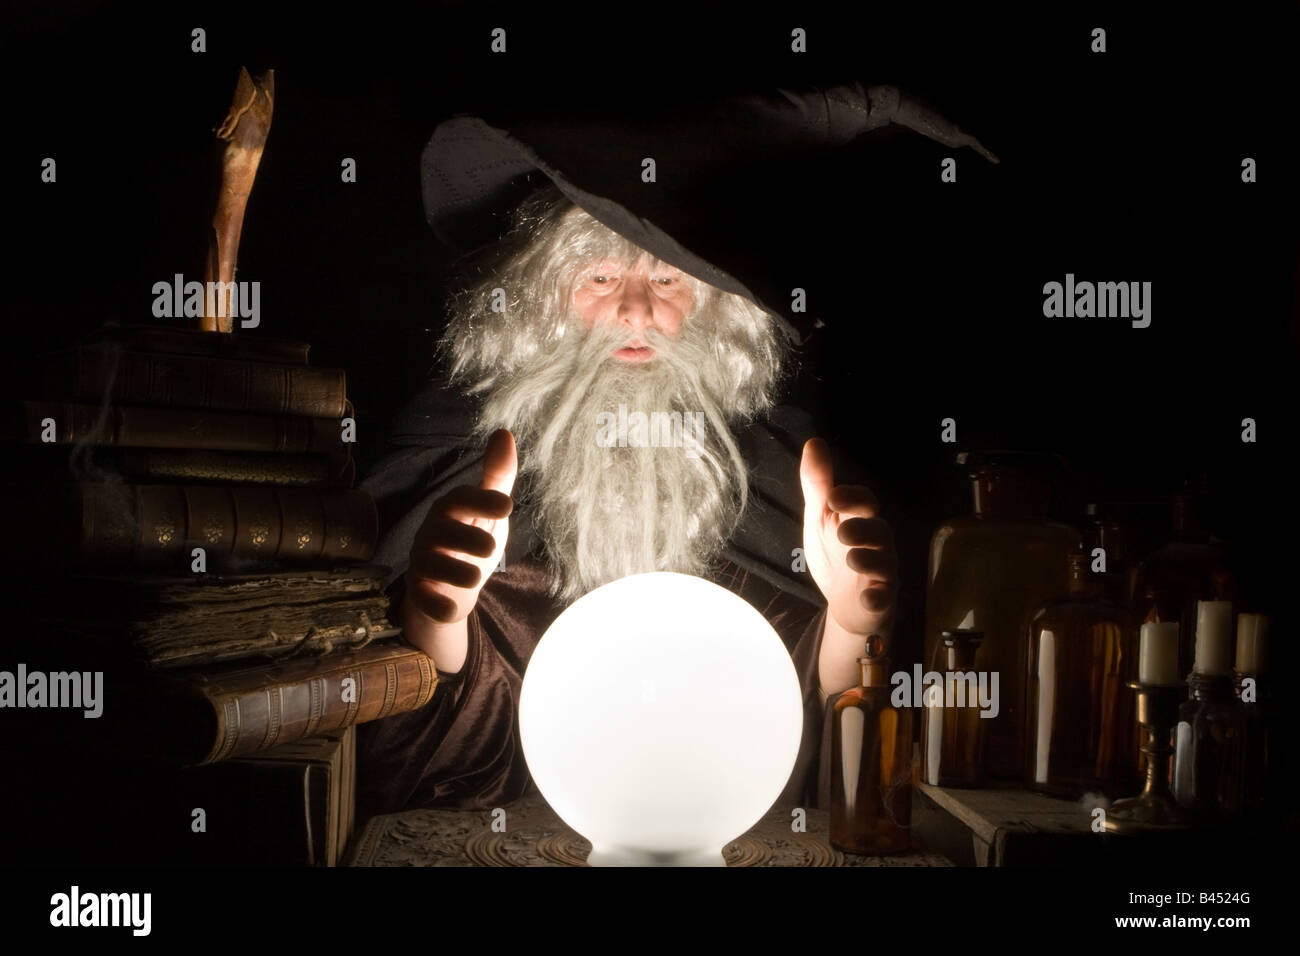 Fortune telling wizard at work at halloween - Stock Image